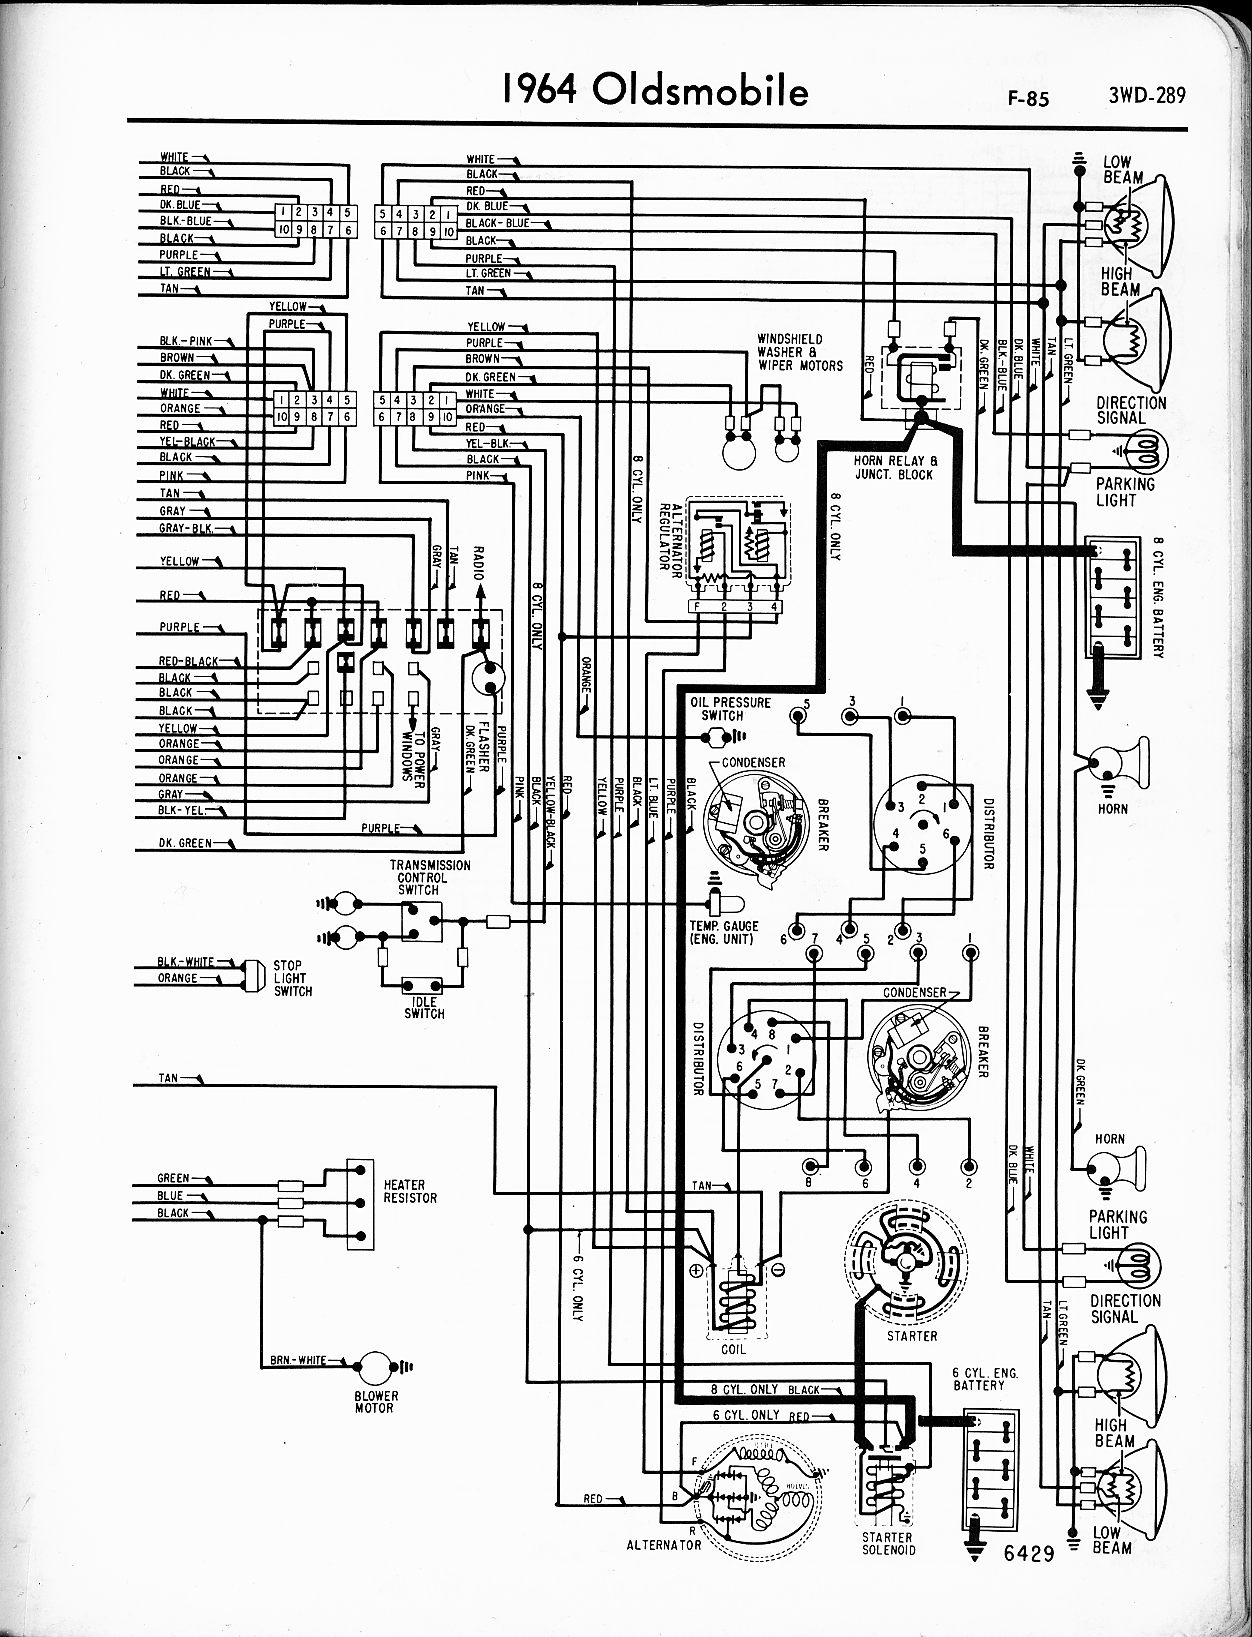 Oldsmobile wiring diagrams the old car manual project 1964 f 85 right page swarovskicordoba Gallery